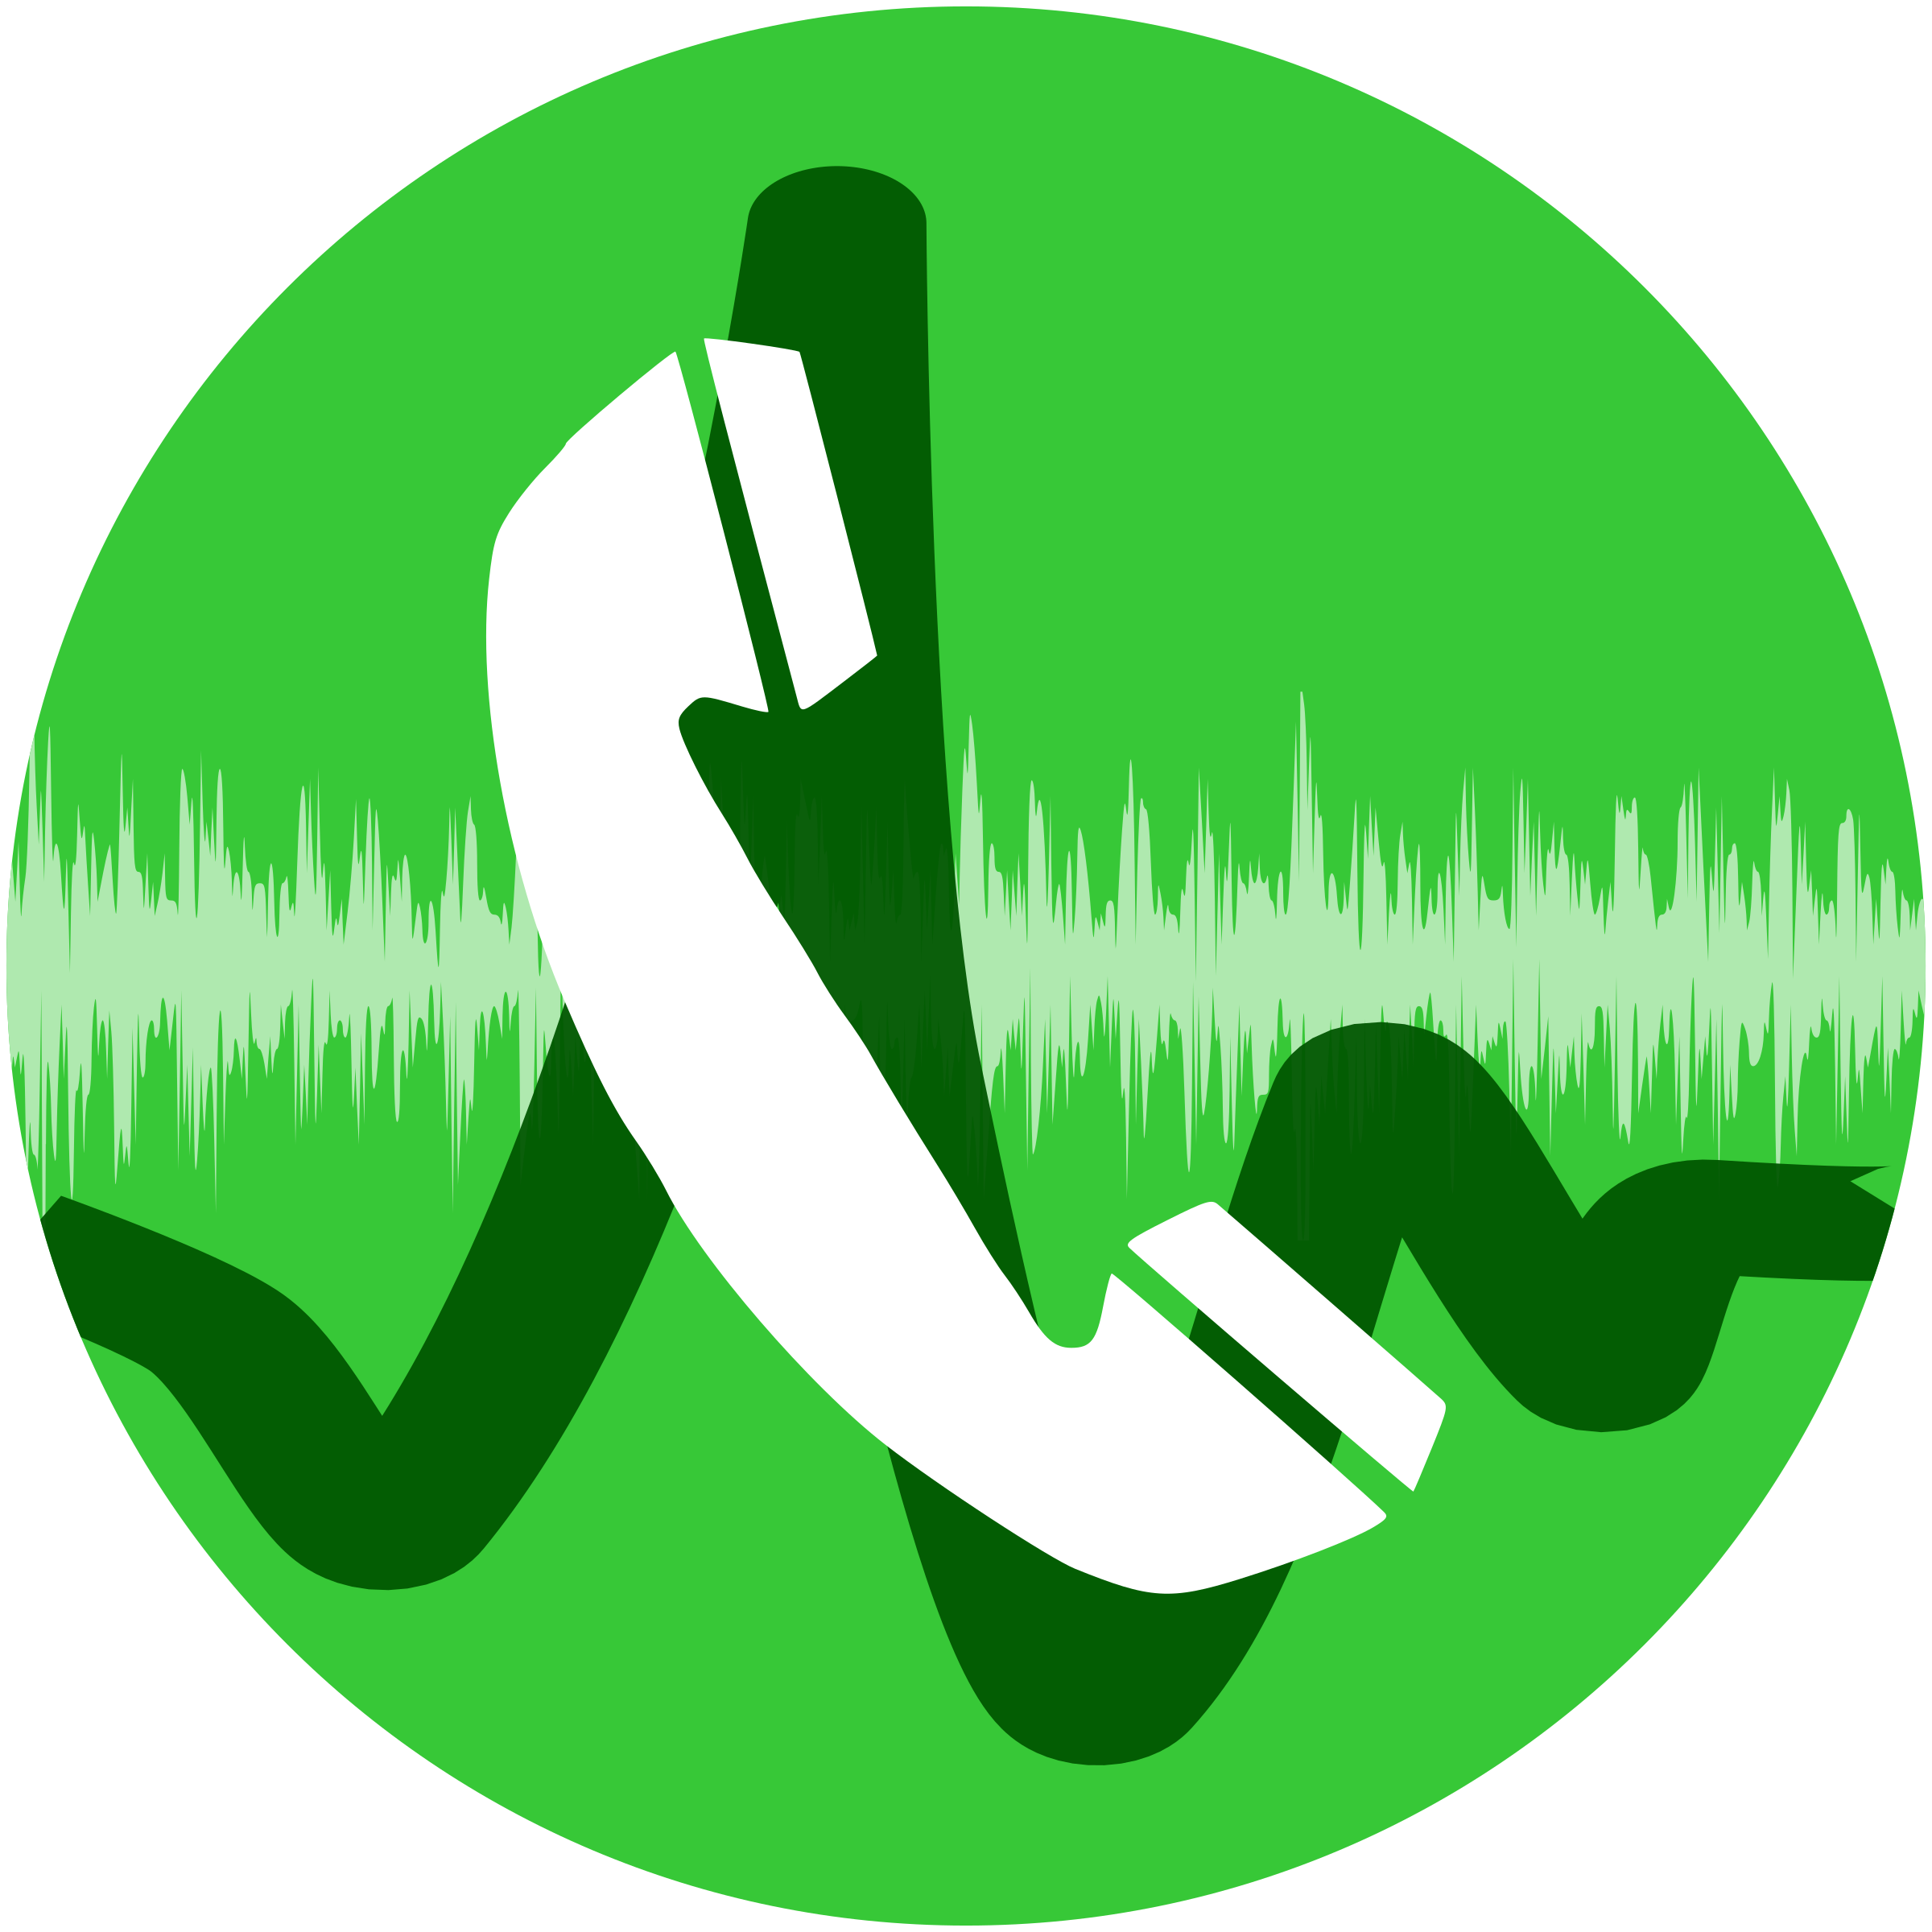 Phone call png. Icon icons free and